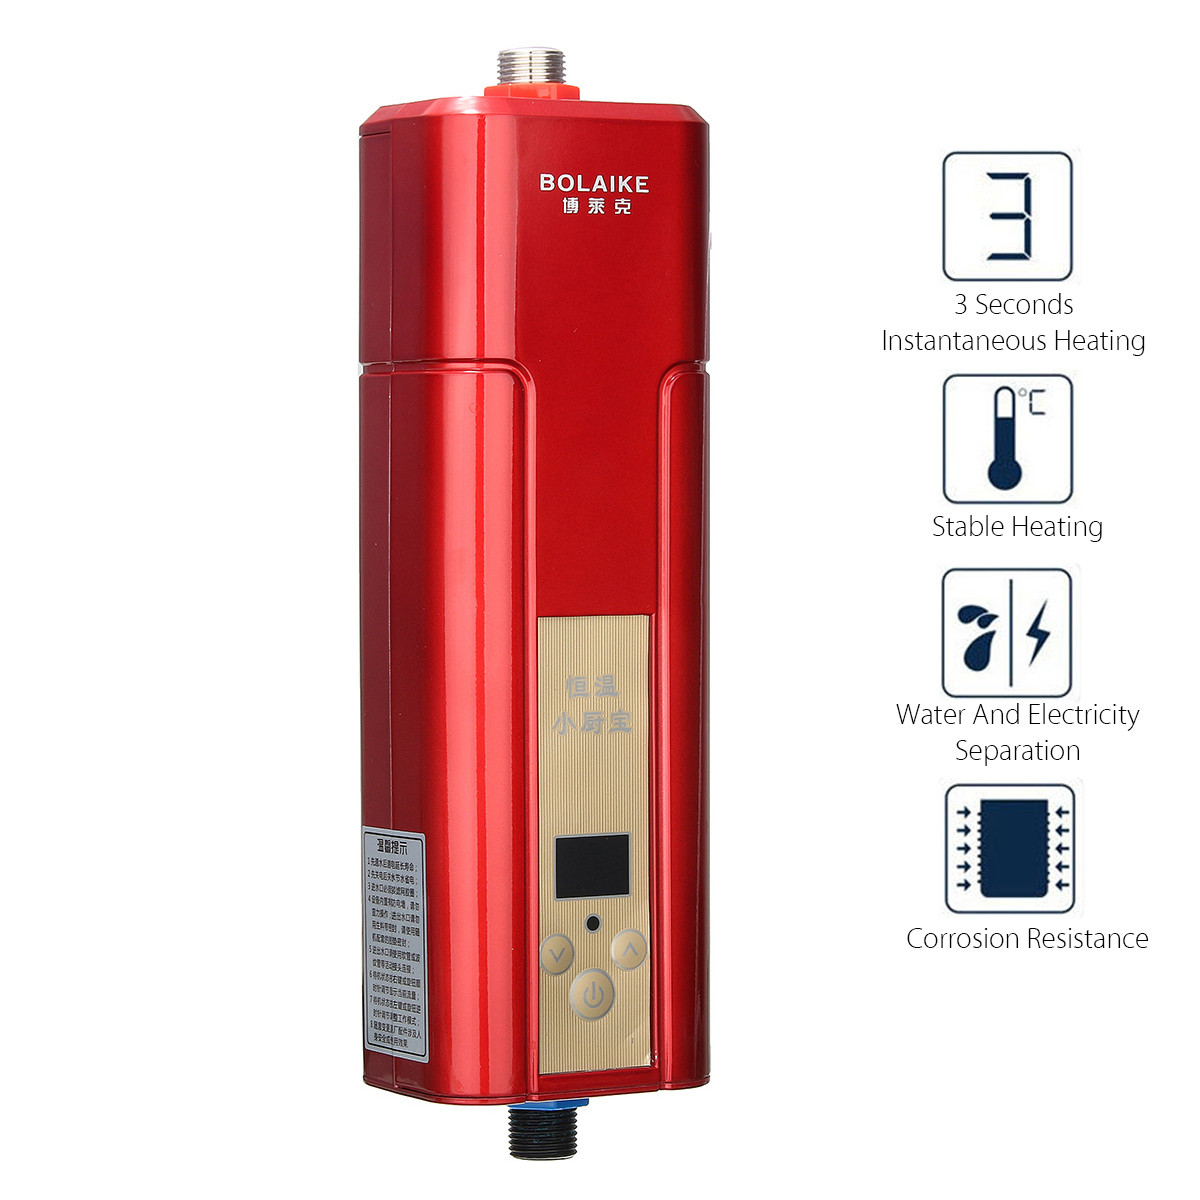 220V 5500W Electric Water Heater Mini Instant Tankless Water Heater Indoor Shower Kitchen Bathroom Water Heater Appliances(China)